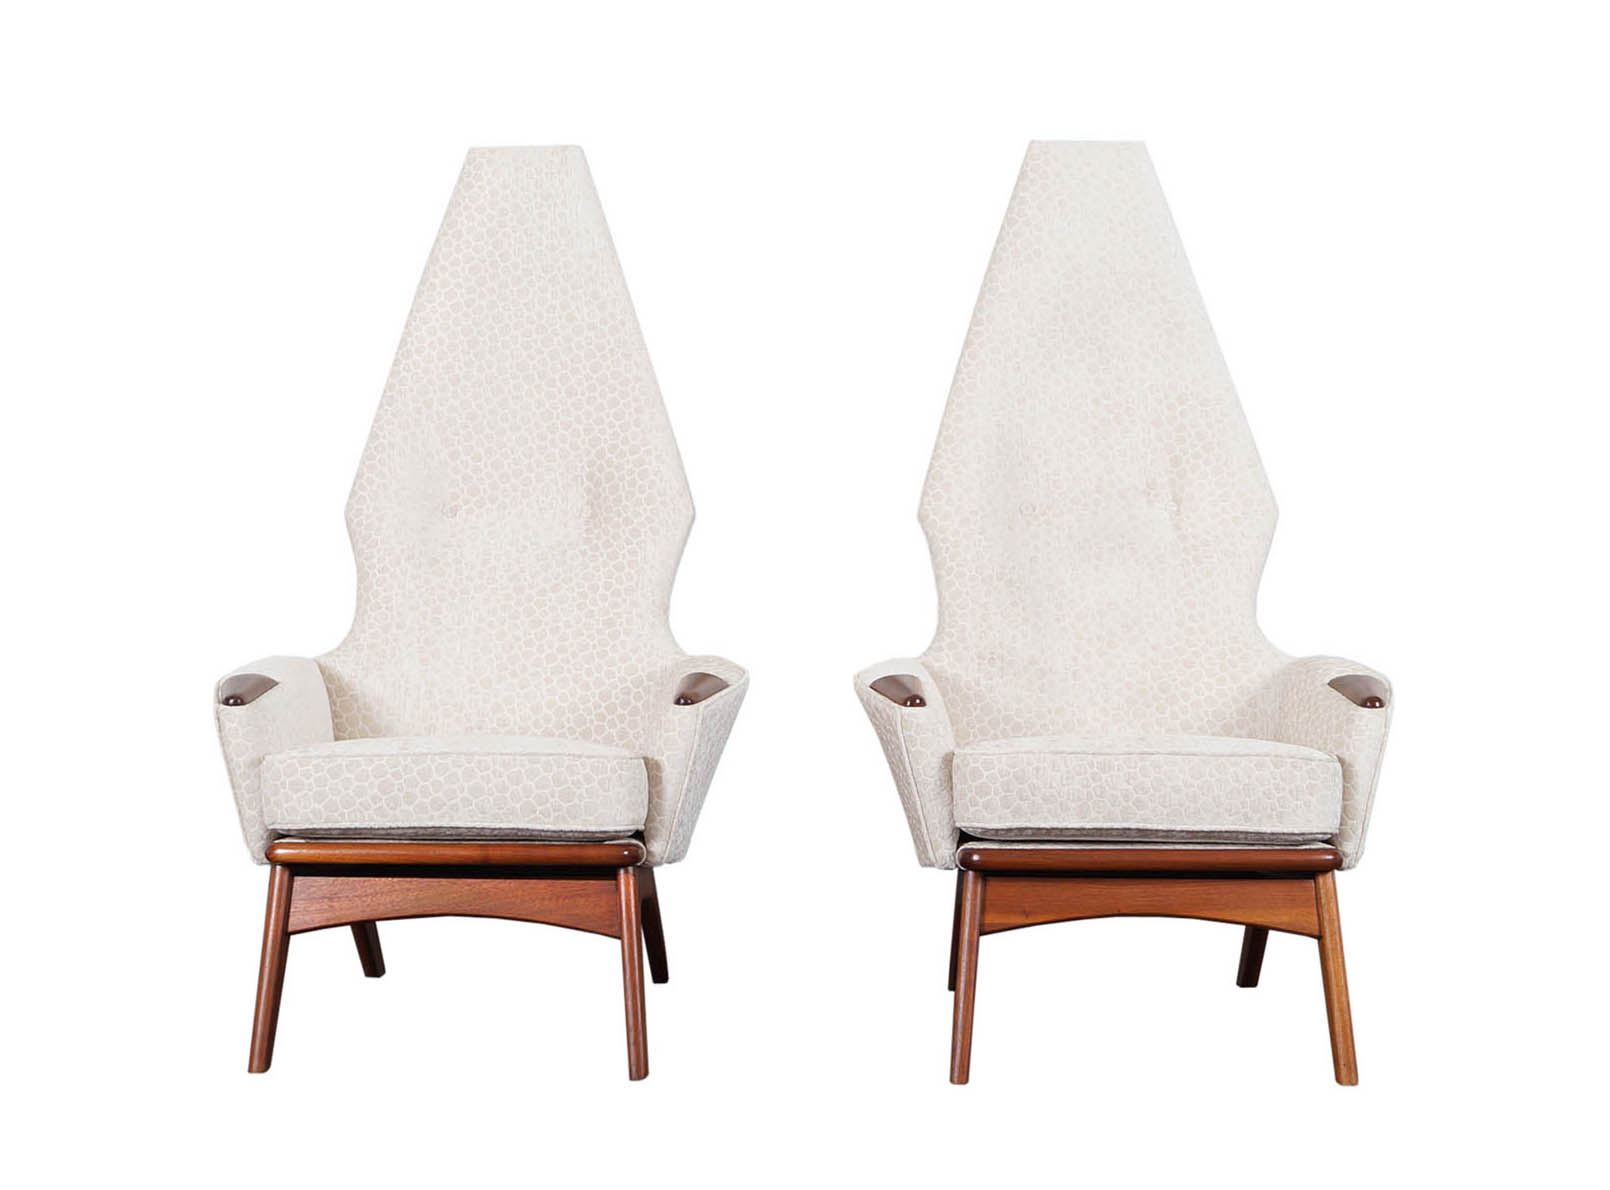 Vintage High Back Lounge Chairs by Adrian Pearsall